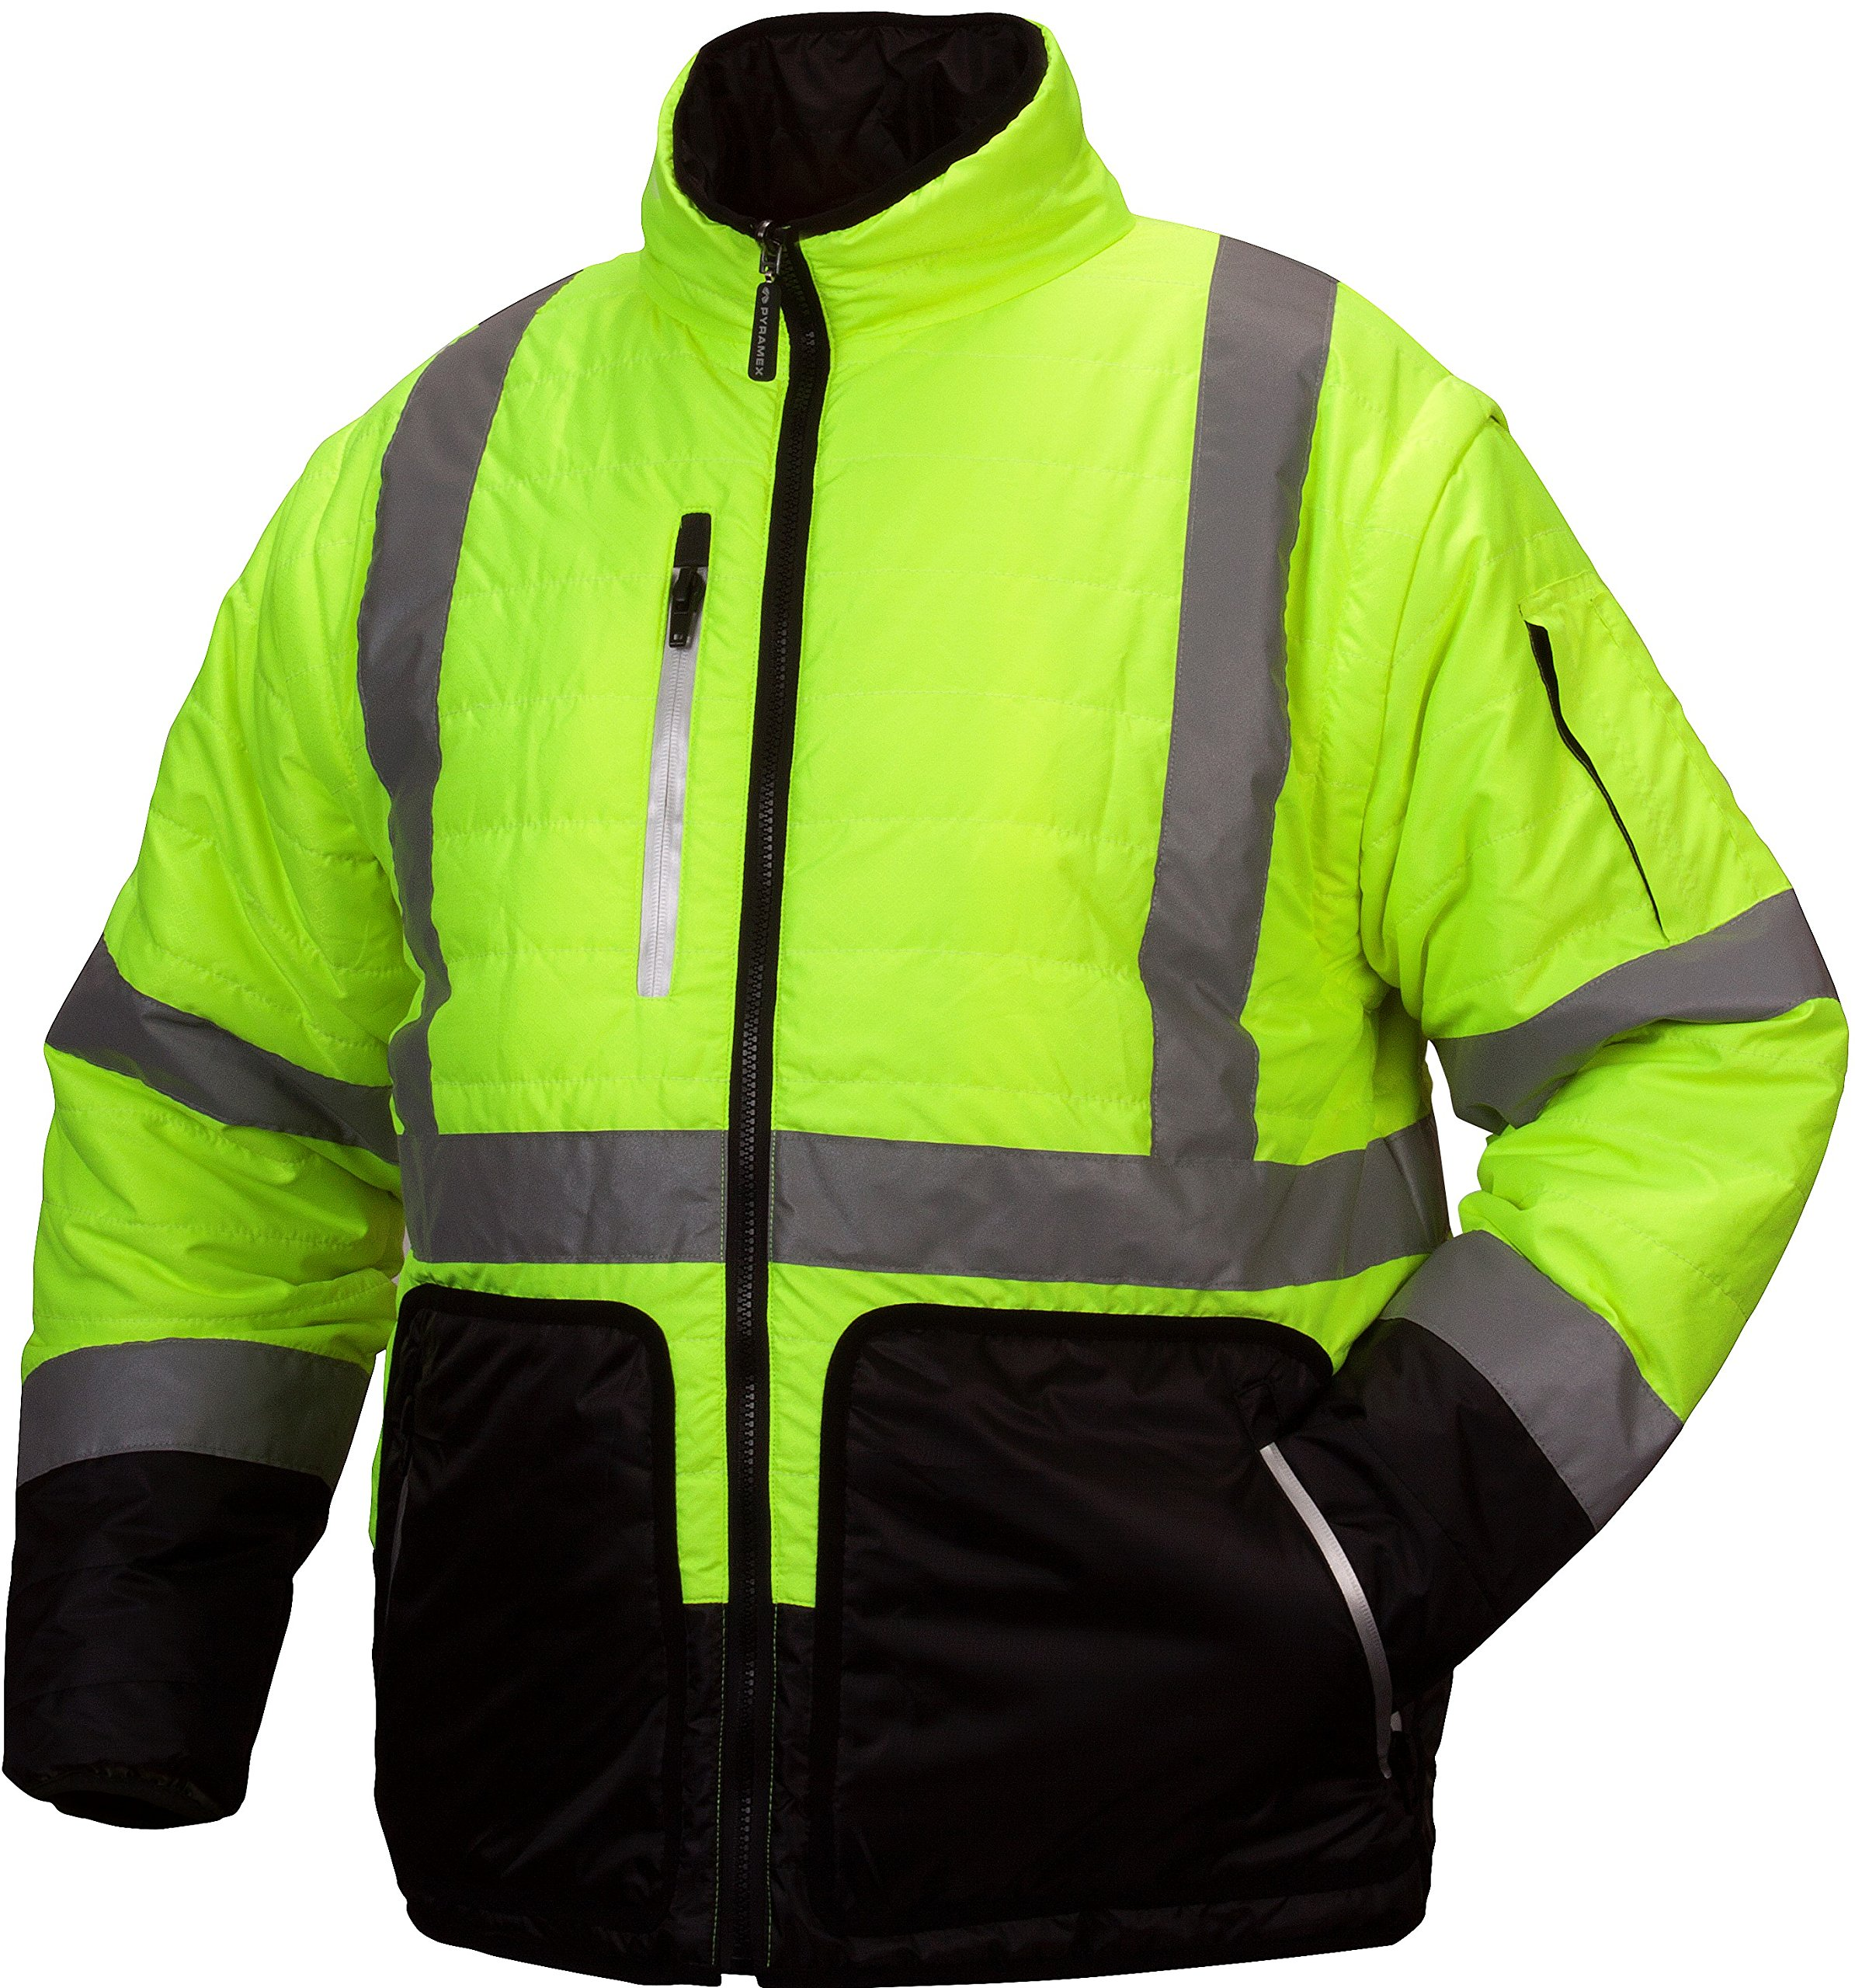 Pyramex RJR3310XL Rjr33 Class 3 Hi-Vis Lime 4-in-1 Quilted Reversible Jacket, X-Large